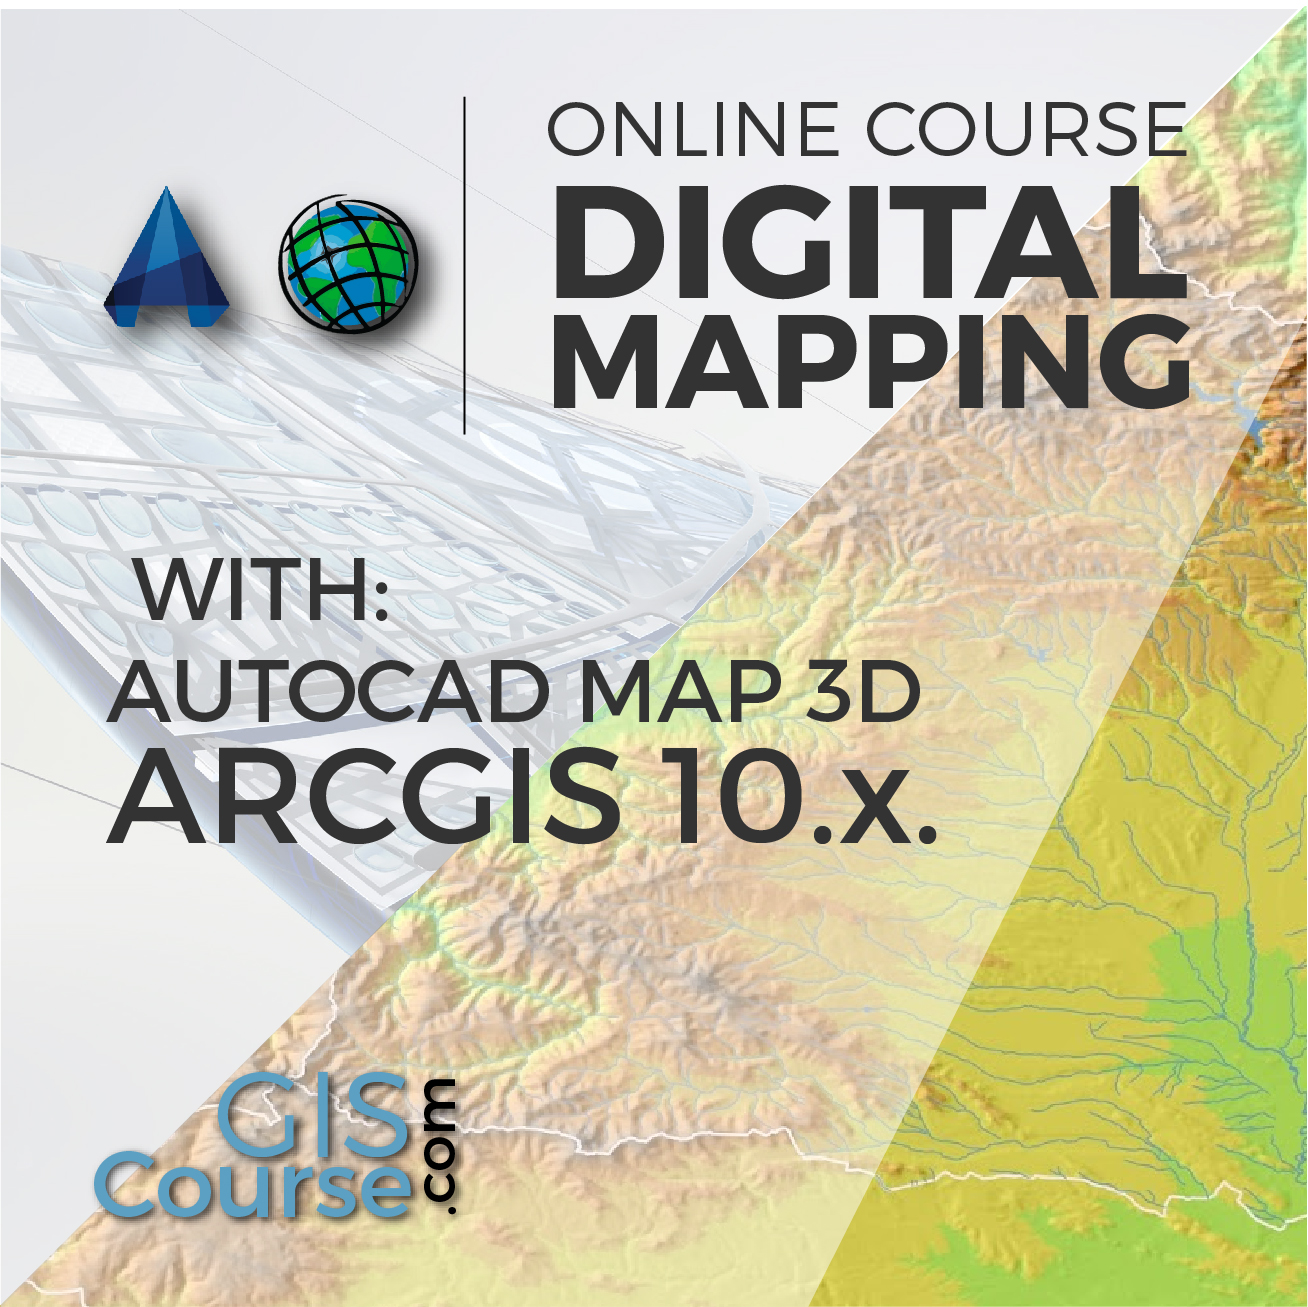 Digital Mapping with ArcGIS 10 and Autocad Map 3D on